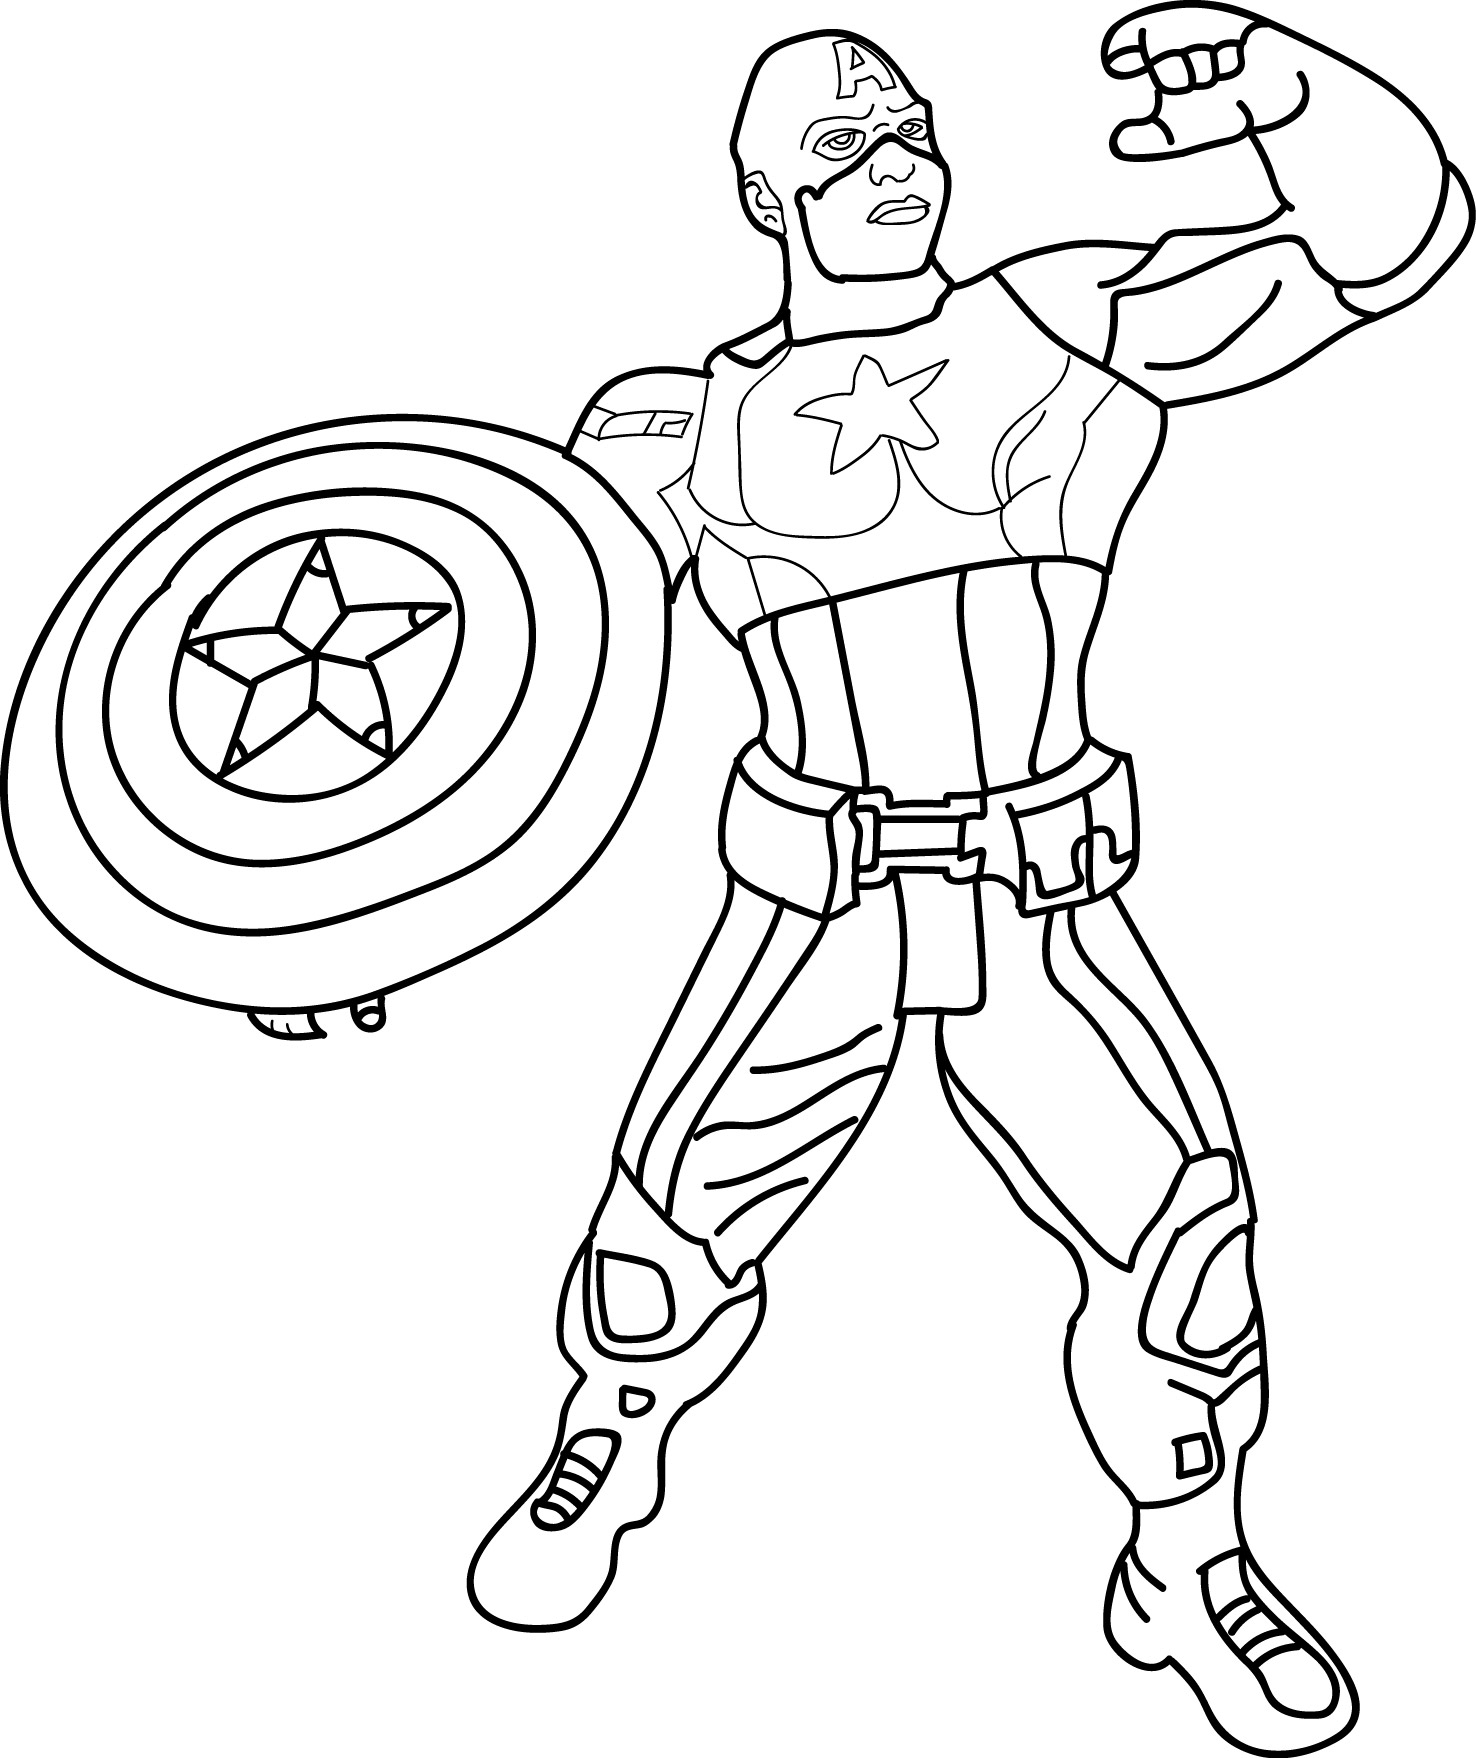 America Coloring Pages at GetDrawings.com | Free for personal use ...